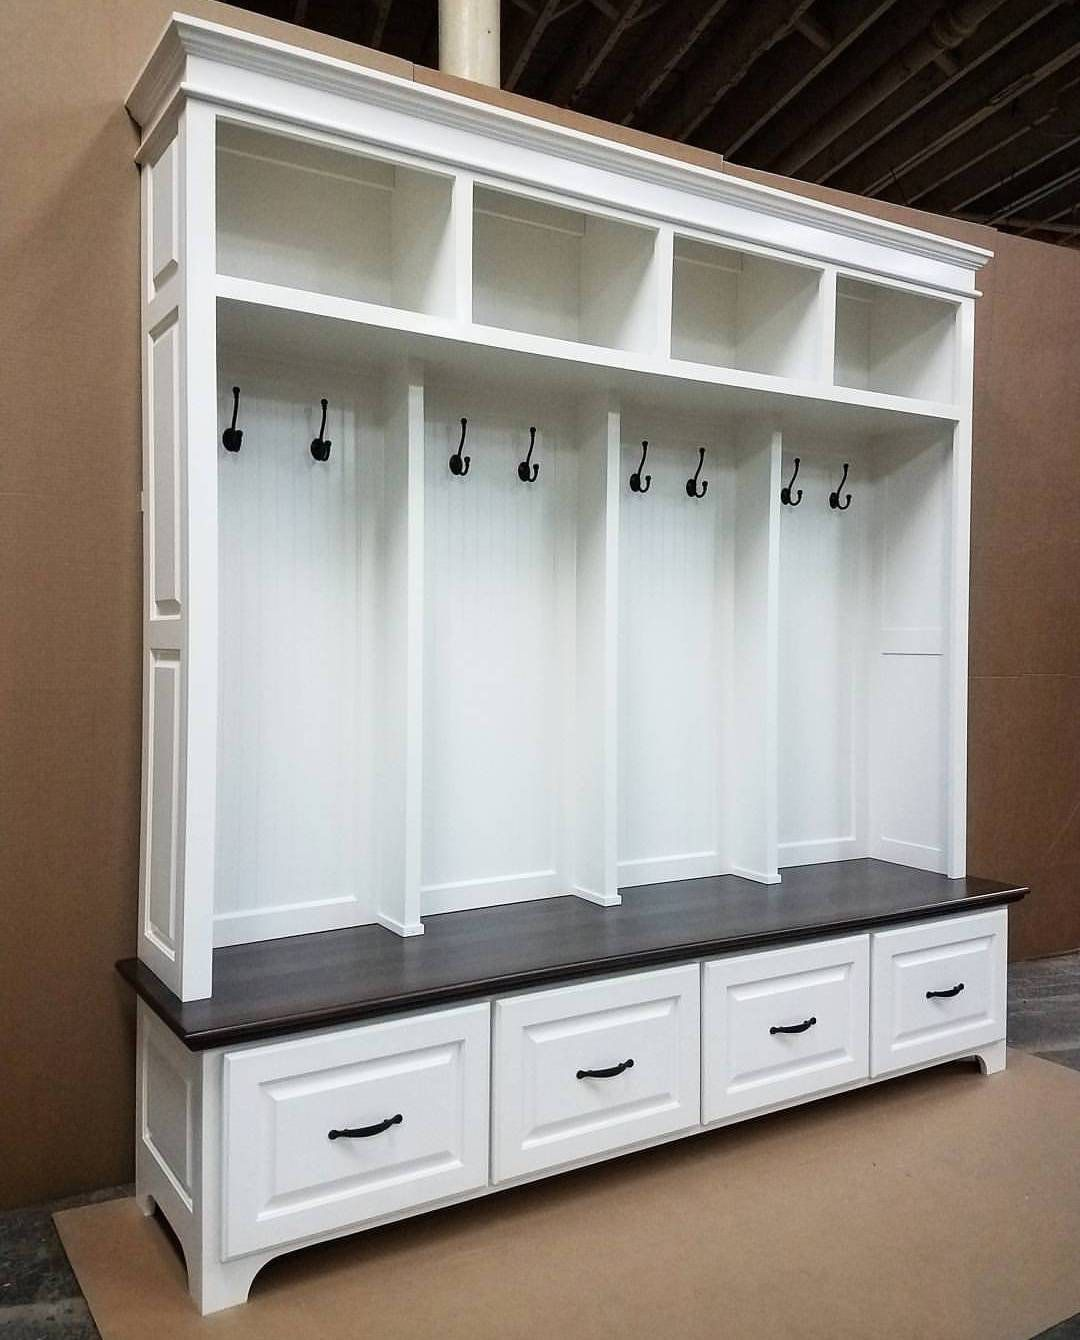 The Williamsburg Mudroom Bench Lockers Cubbies Storage Etsy Cubby Storage Mudroom Lockers Mudroom Bench